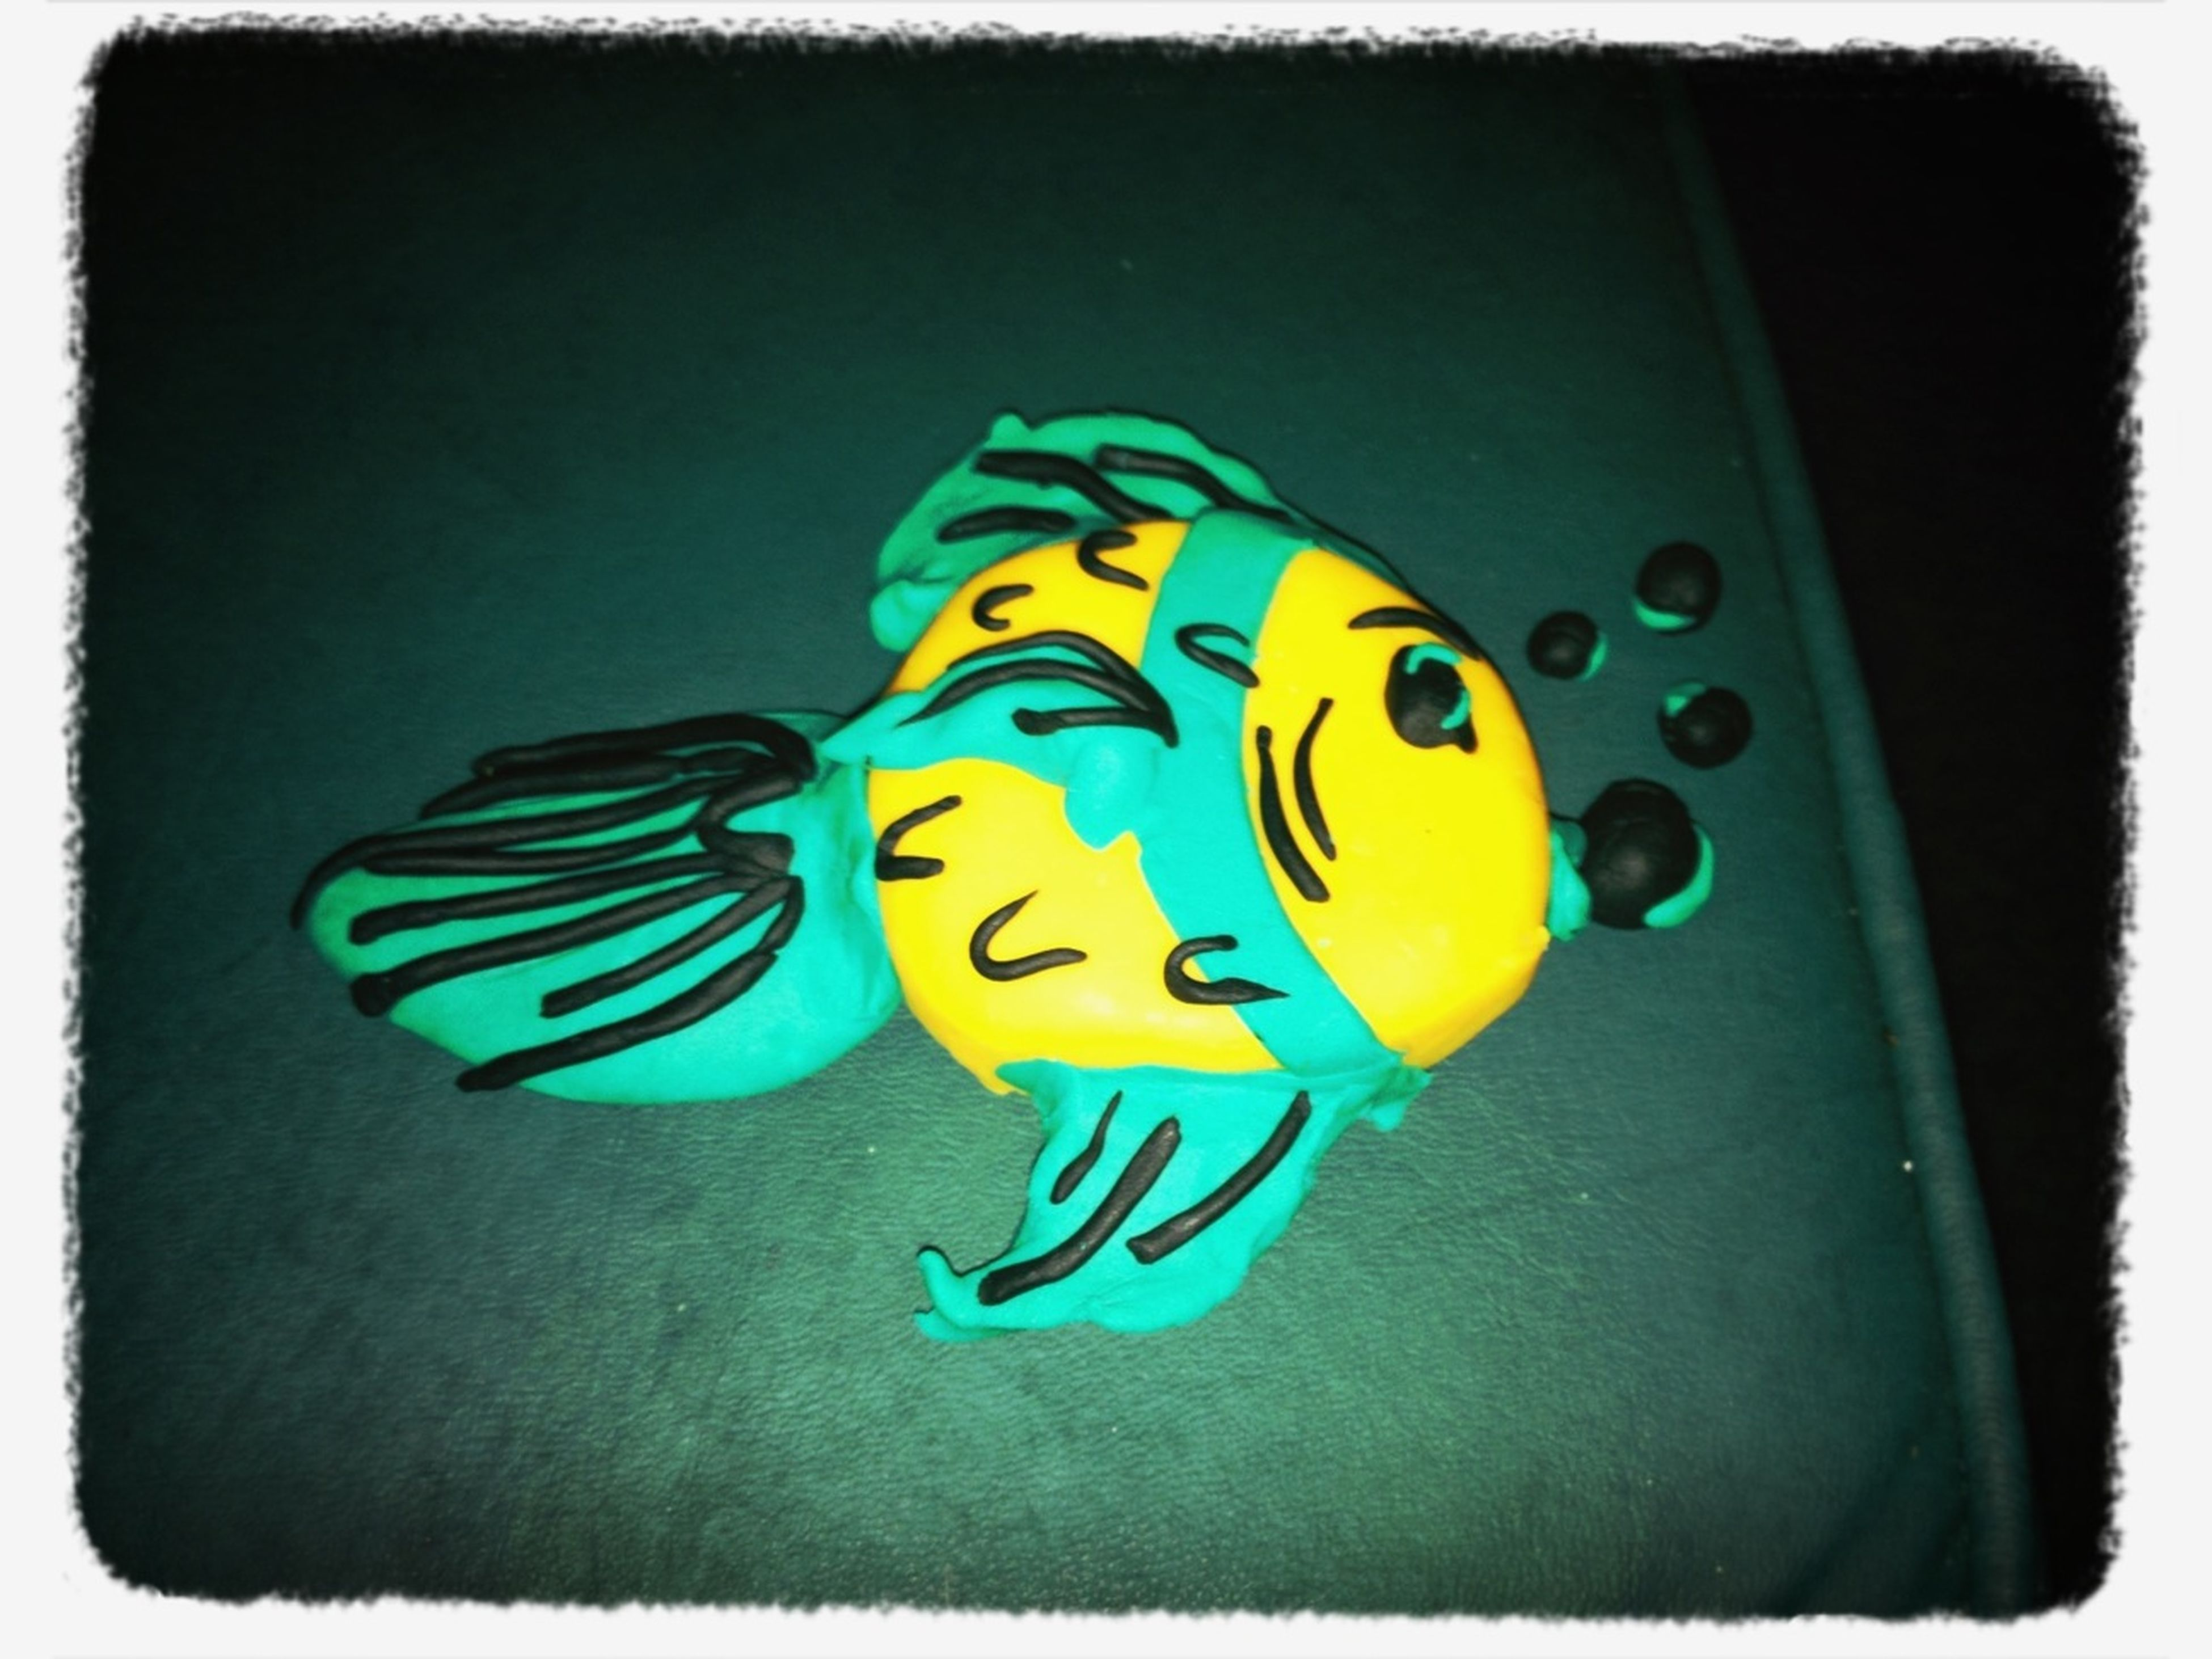 transfer print, art and craft, auto post production filter, art, creativity, multi colored, blue, animal representation, toy, still life, yellow, close-up, human representation, single object, no people, vignette, colorful, high angle view, craft